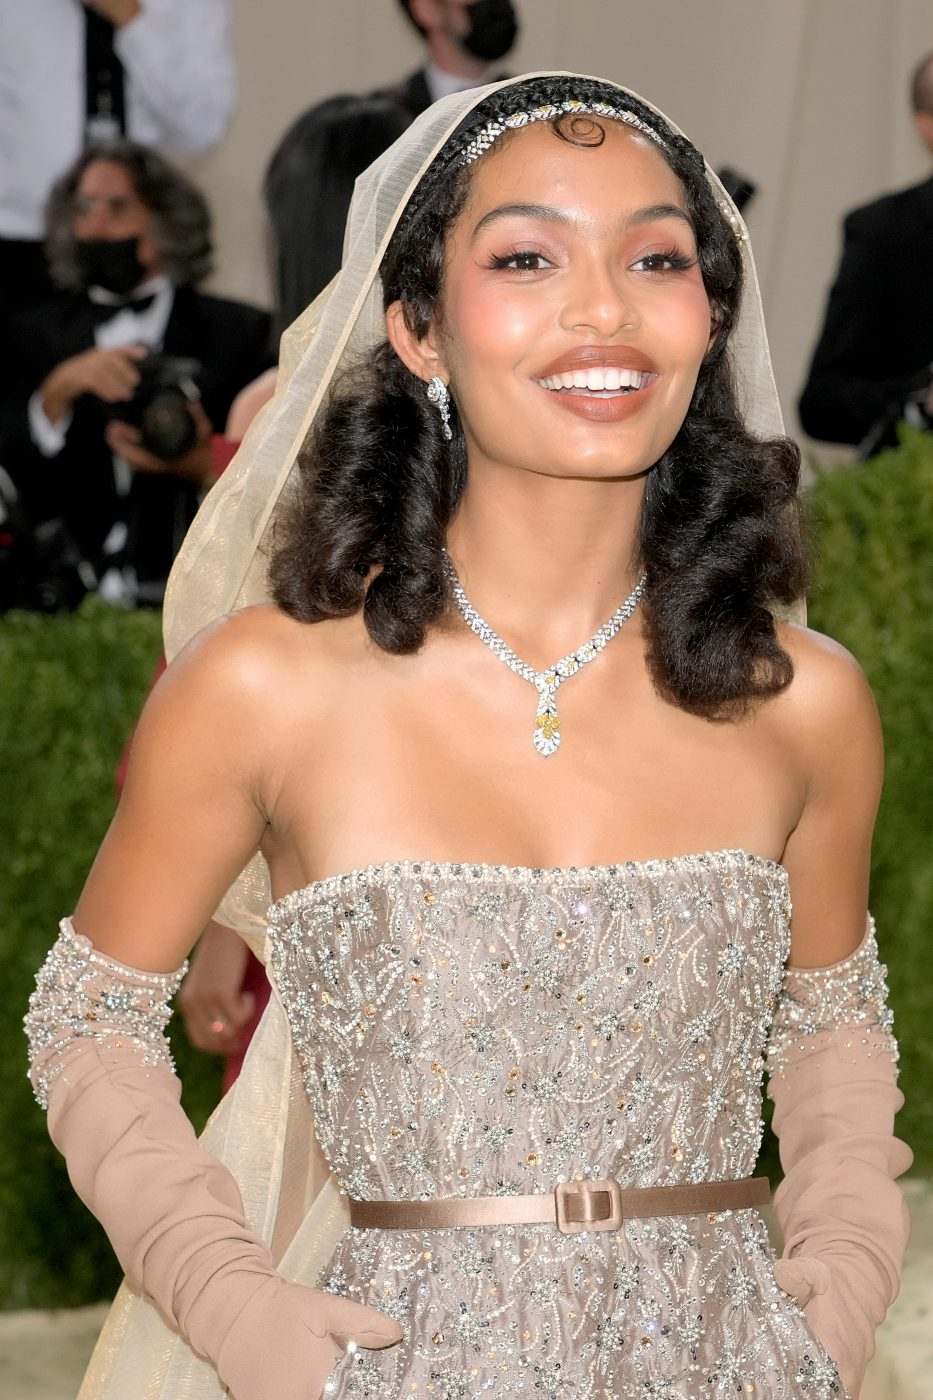 Yara Shahidi, in a Dior dress, wears Cartier earrings, a necklace with yellow diamonds, white diamonds and onyx and a necklace with yellow and white diamonds as a headband at the 2021 Met Gala in New York